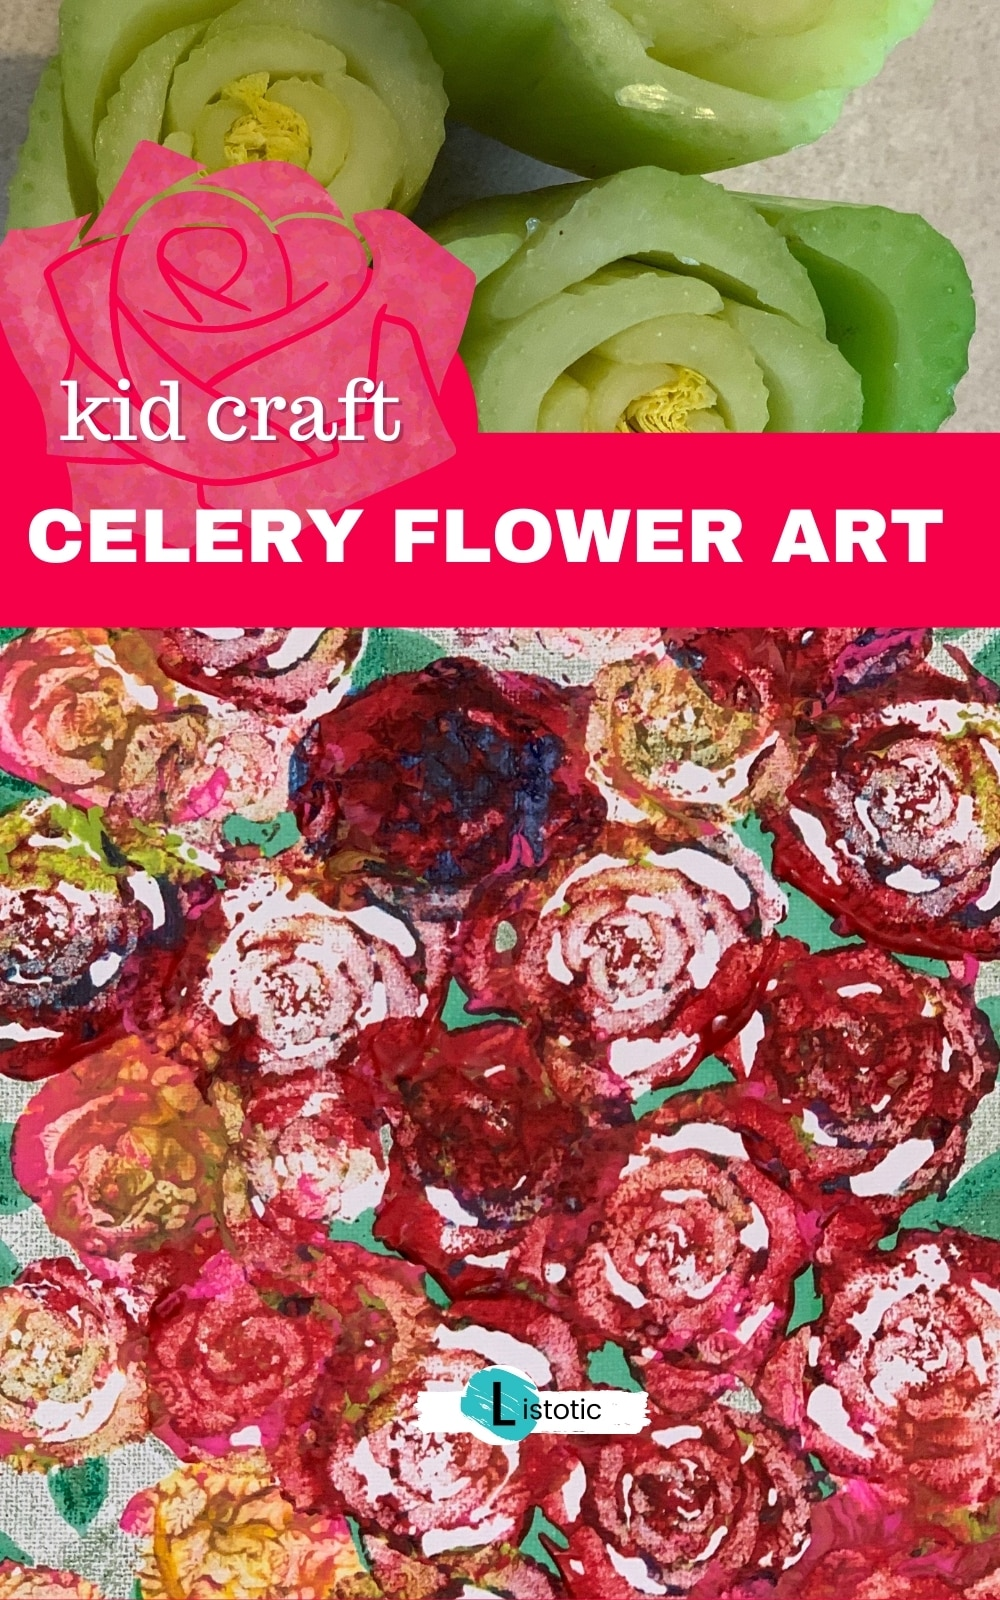 Craft idea for kids or adults using paint and vegetables